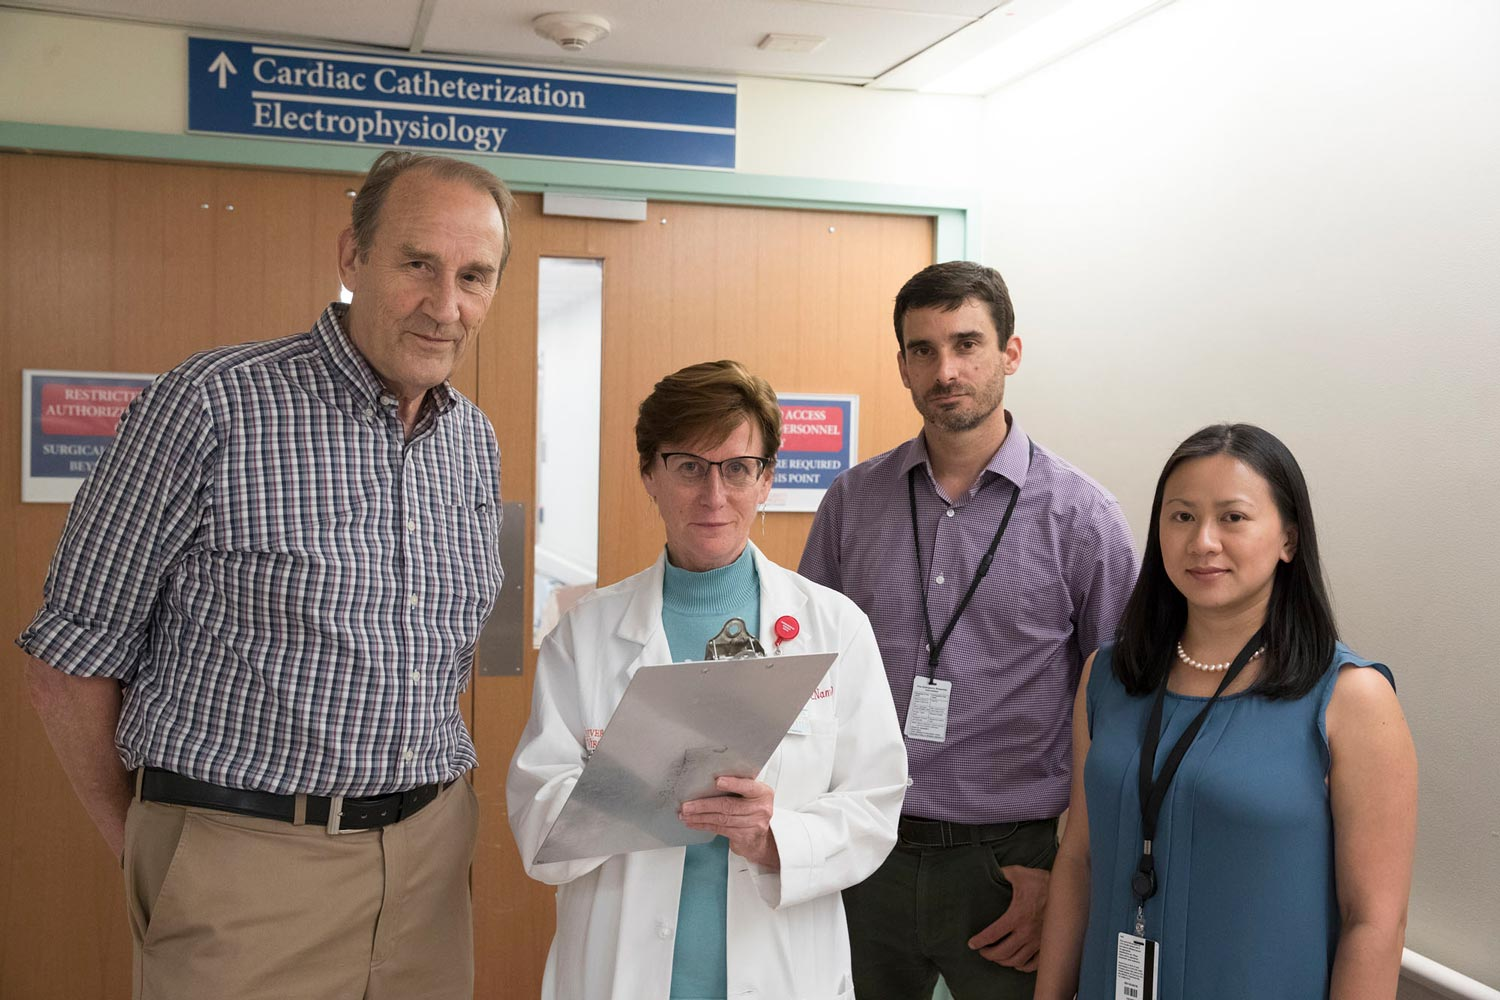 The research team drew from both allergists and cardiologists, and included, from left, Dr. Thomas Platts-Mills, Dr. Coleen McNamara, Dr. Jeff Wilson and Anh Nguyen.